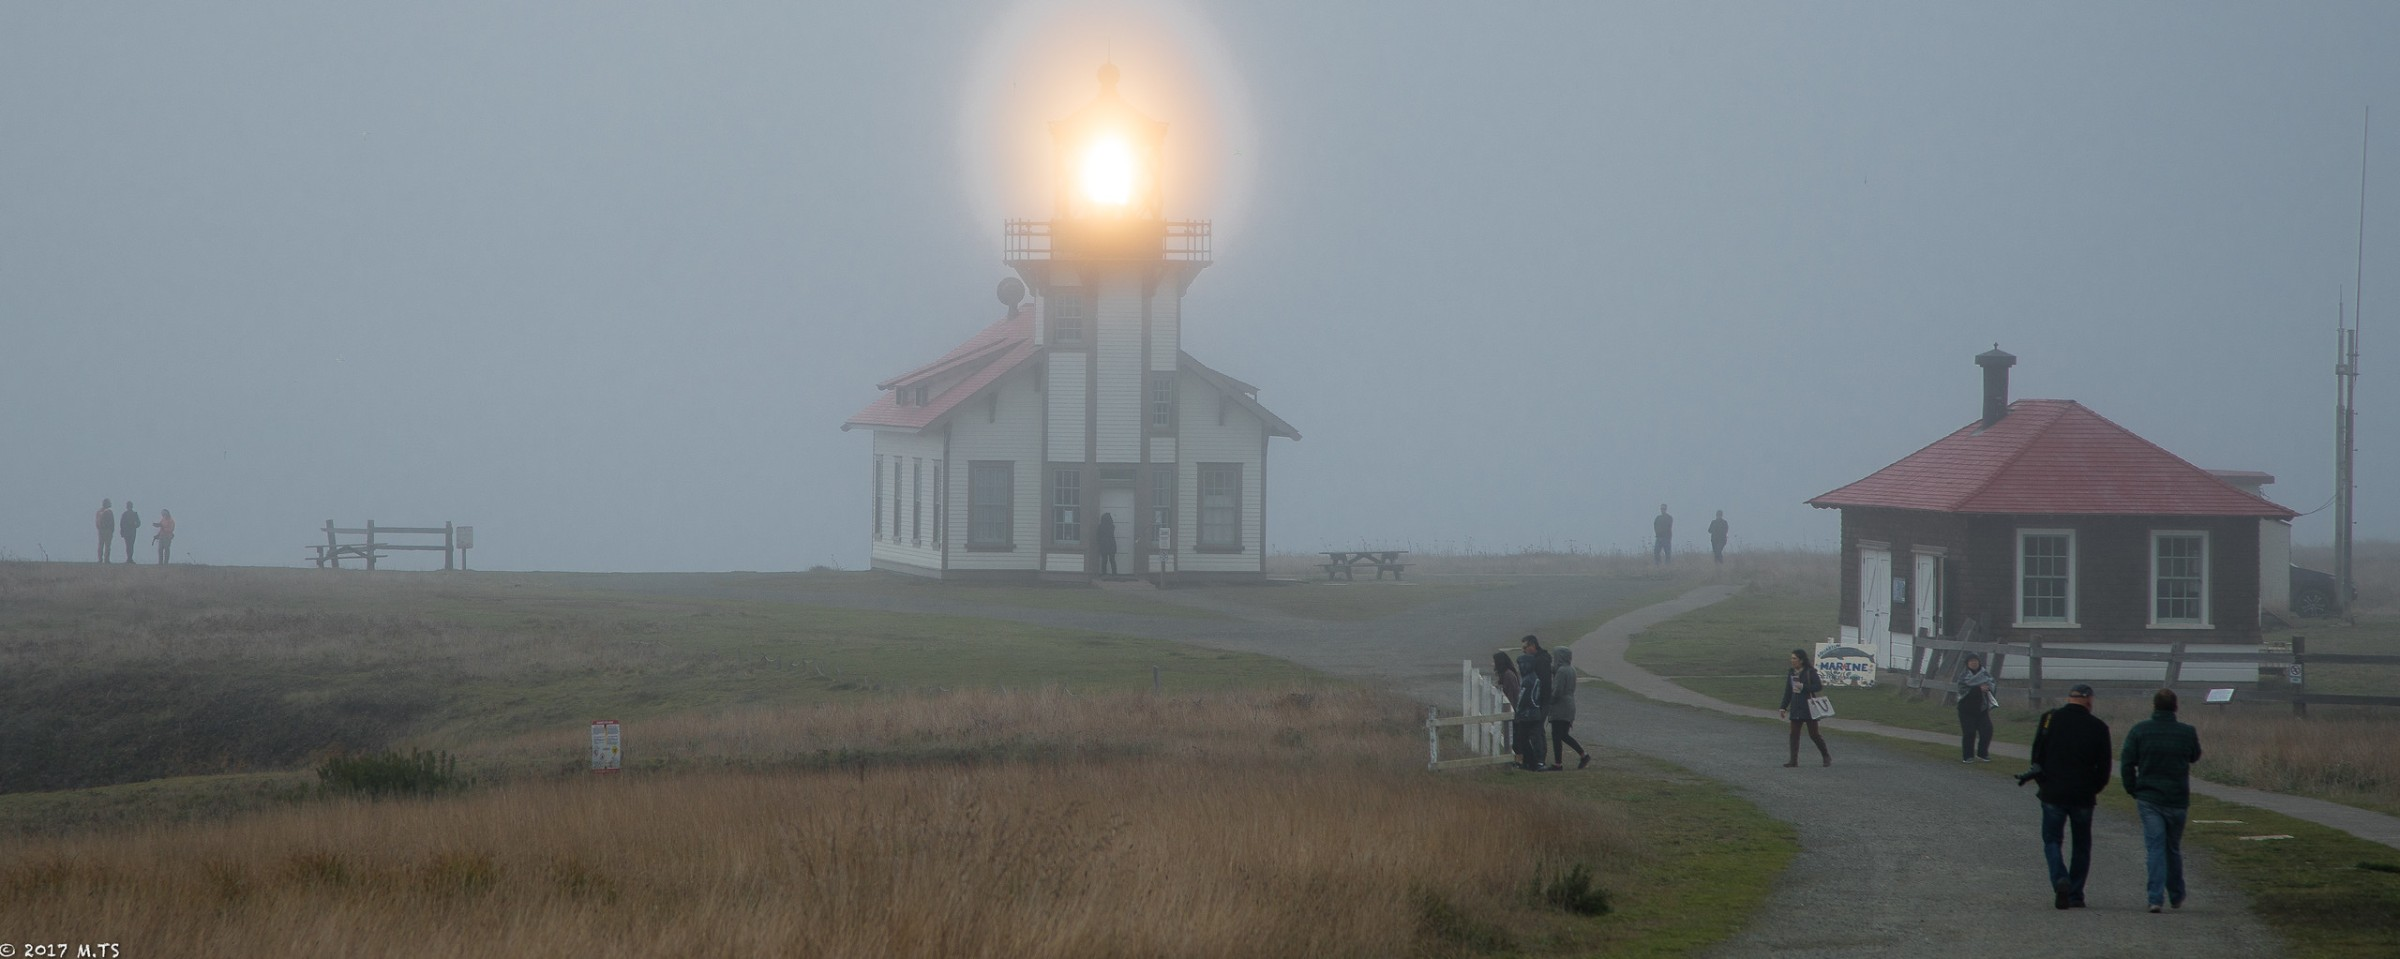 Point Cabrillo Light Station, Mendocino, CA